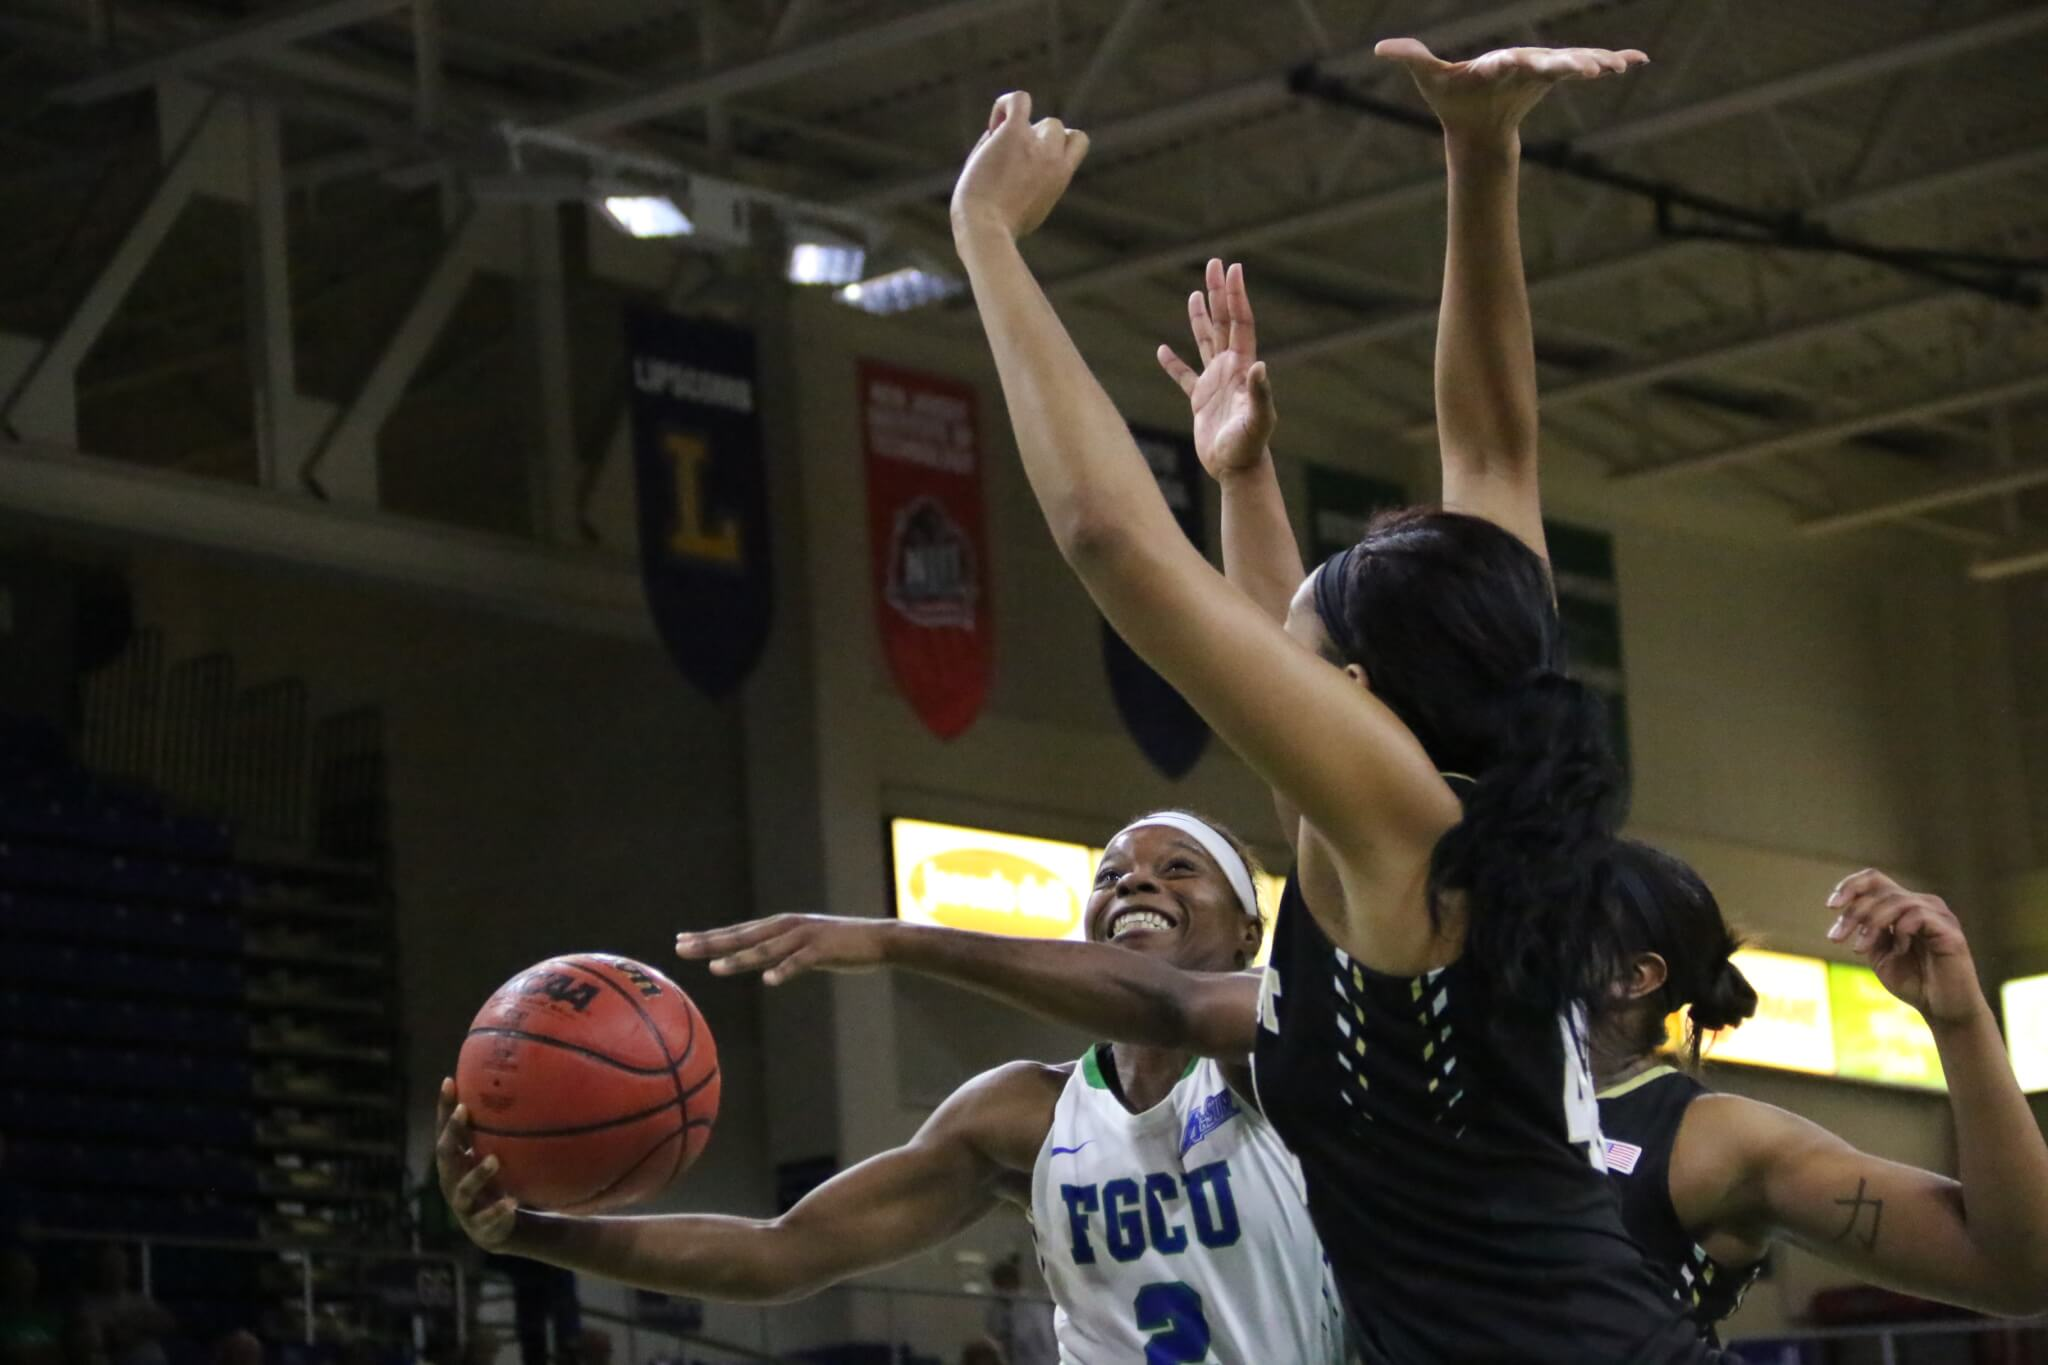 FGCU women to host Tulane in Sweet Sixteen of WNIT